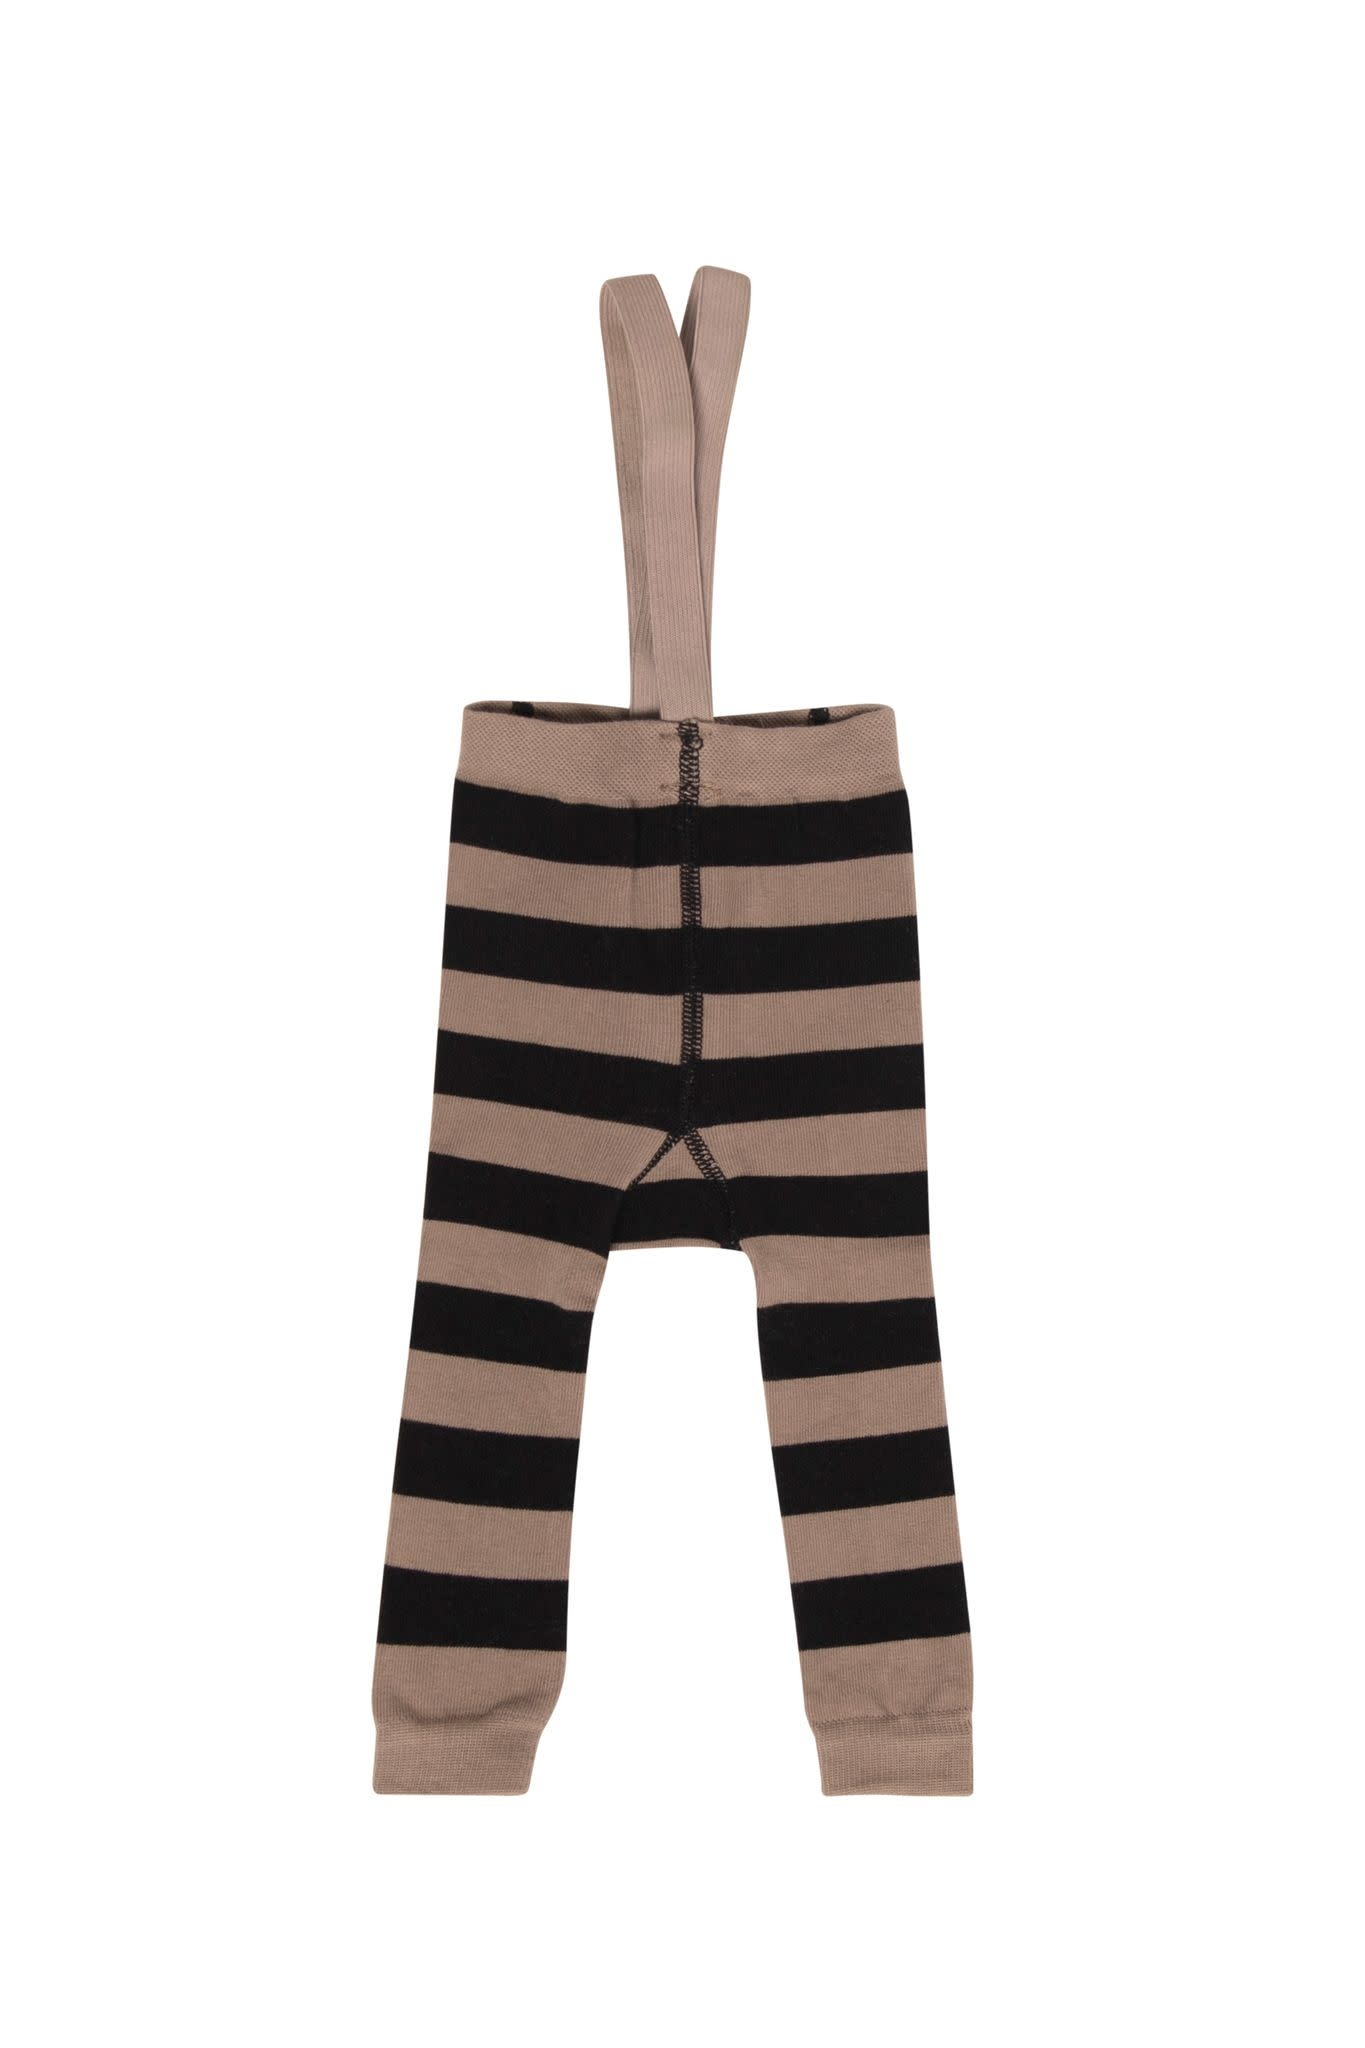 Maed For mini Maed for mini - Chill chihuahua tights 0-1 year